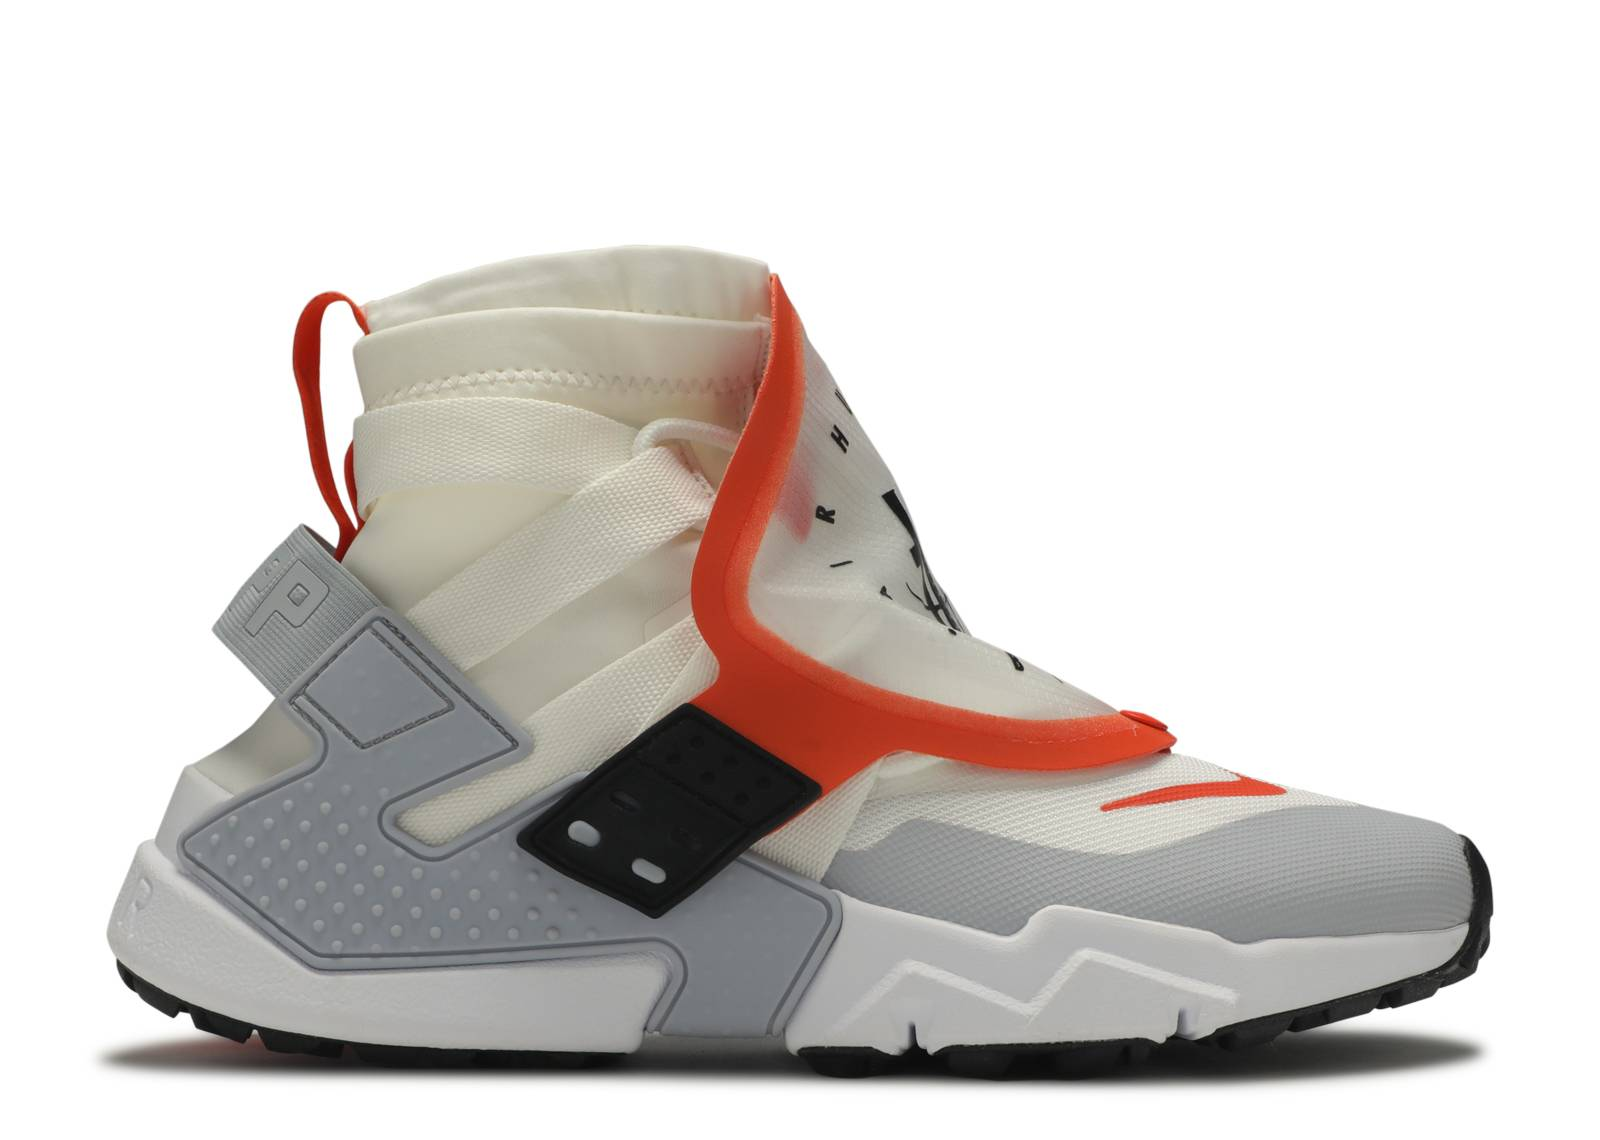 6b367f2ffcc3d Nike Air Huarache Gripp Qs - Nike - at0298 100 - sail/orange white ...